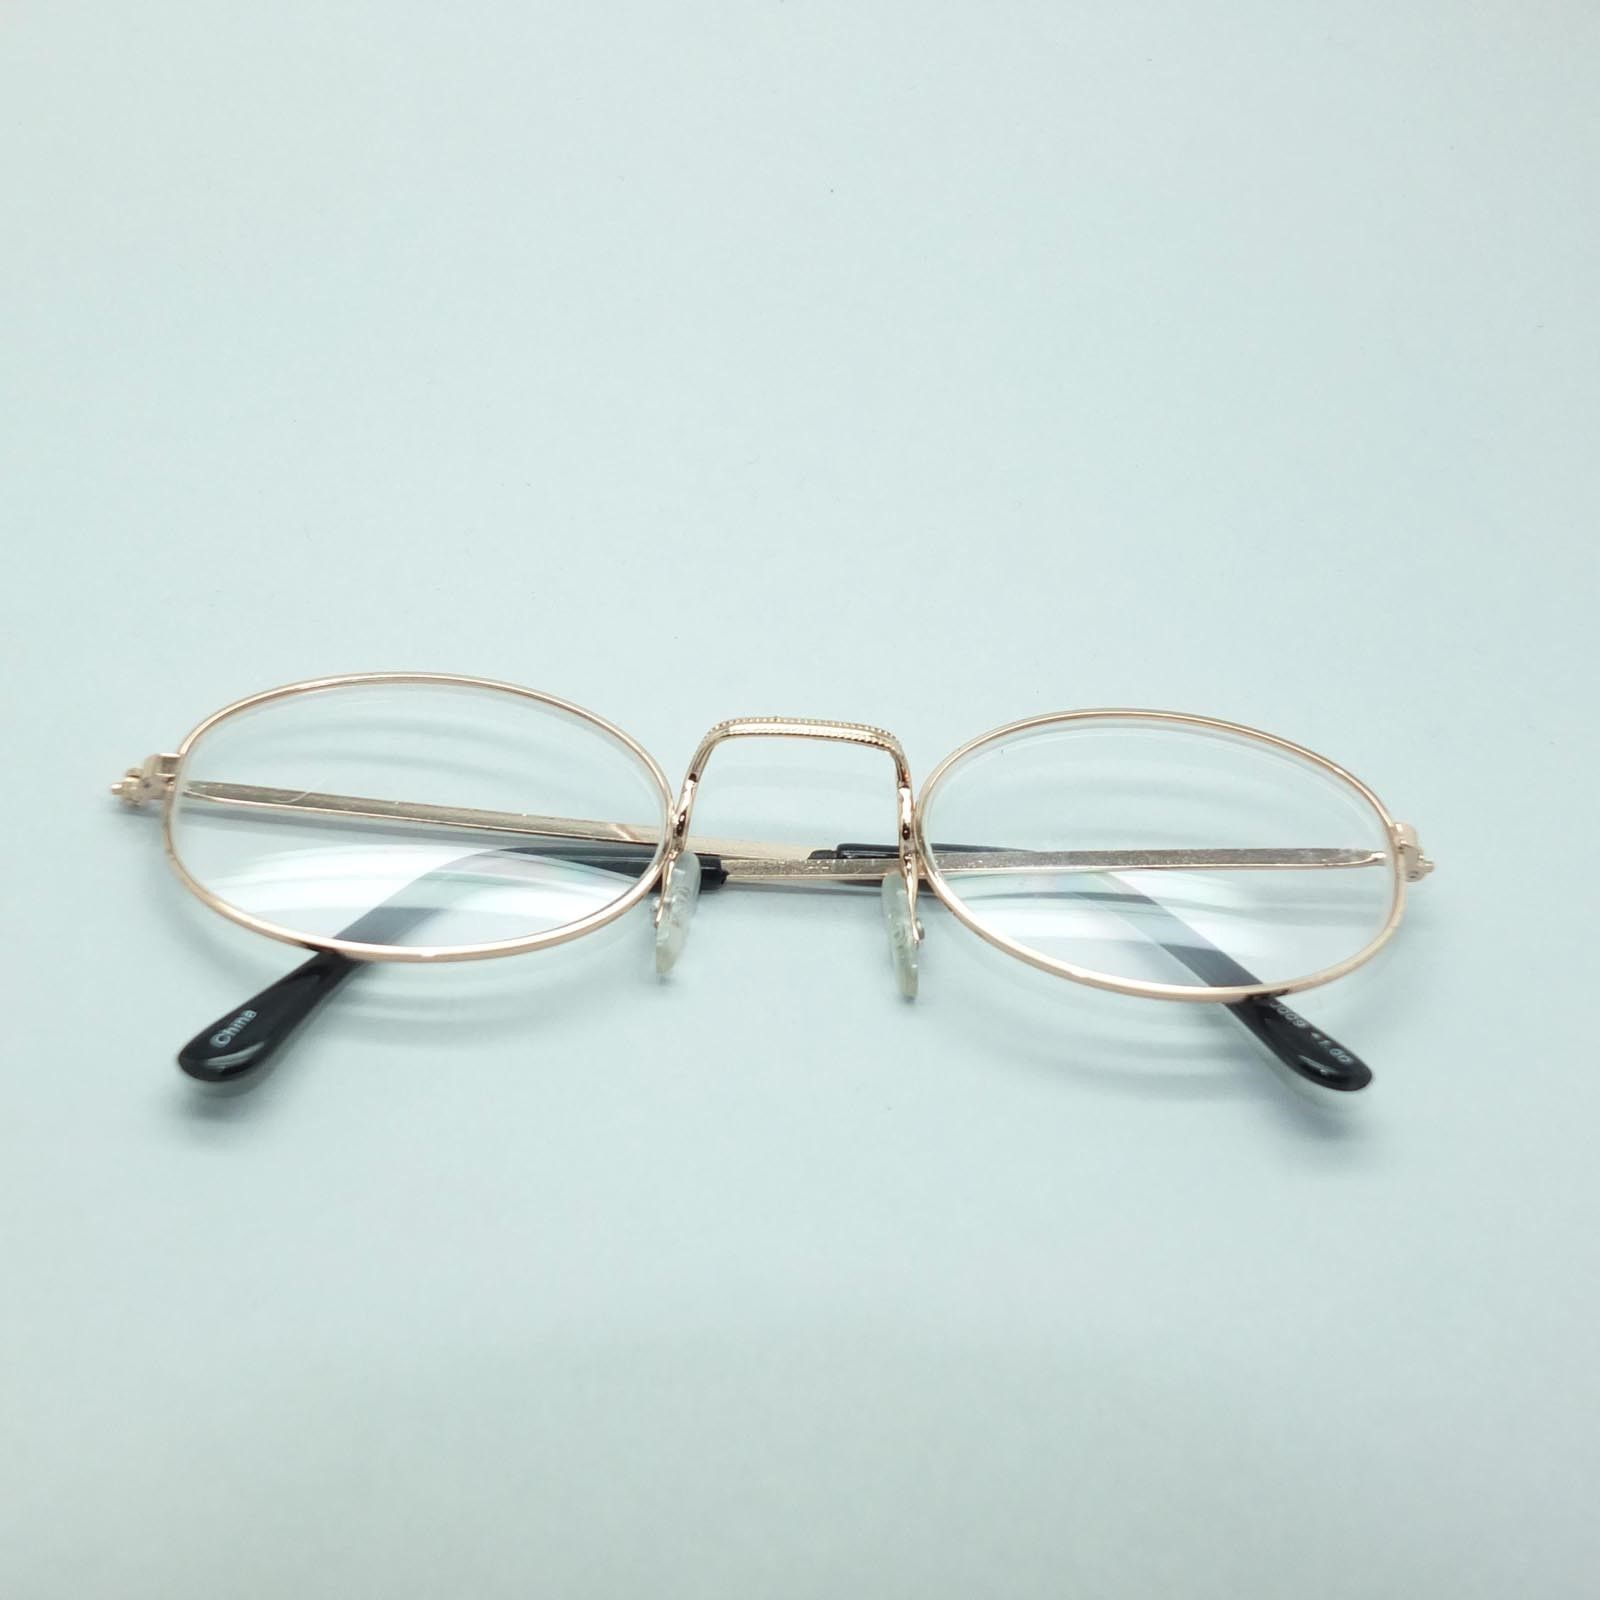 Simple Oval Gold Metal Wire Frame Square Bridge Reading Glasses +1.00 Lens image 4